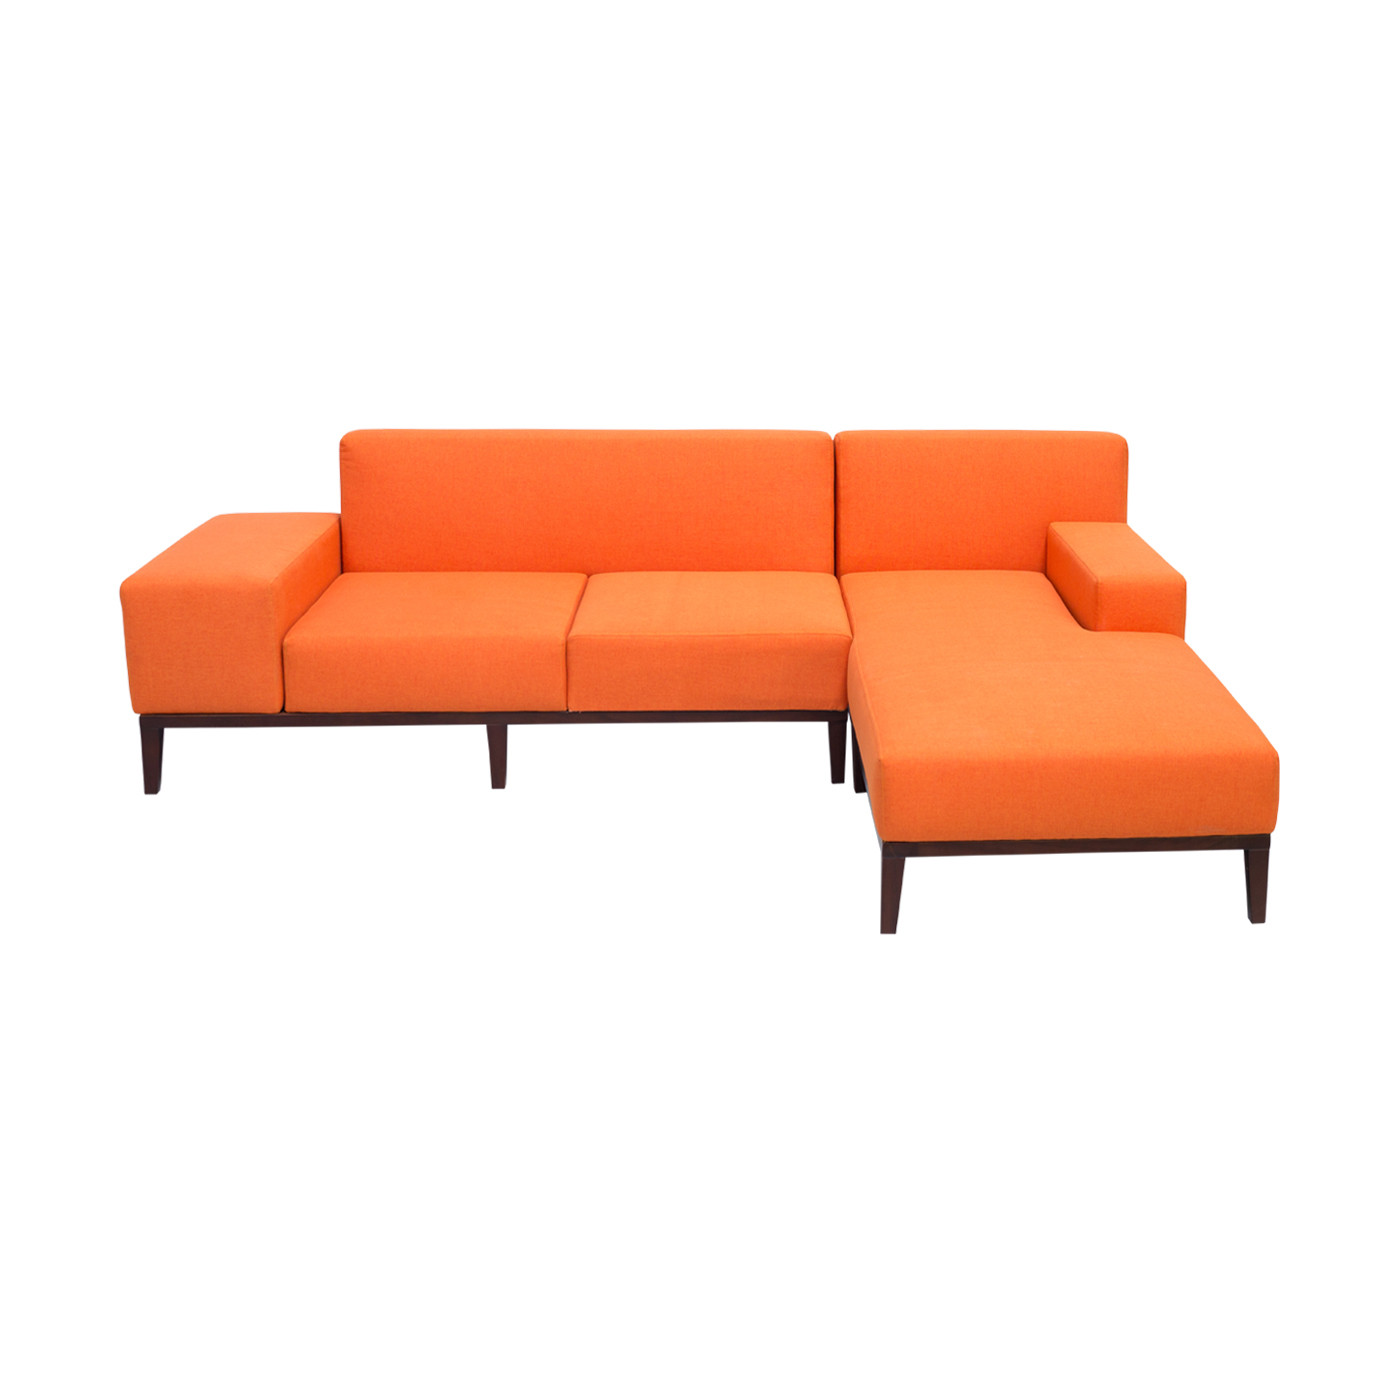 SoHo Orange Sofa